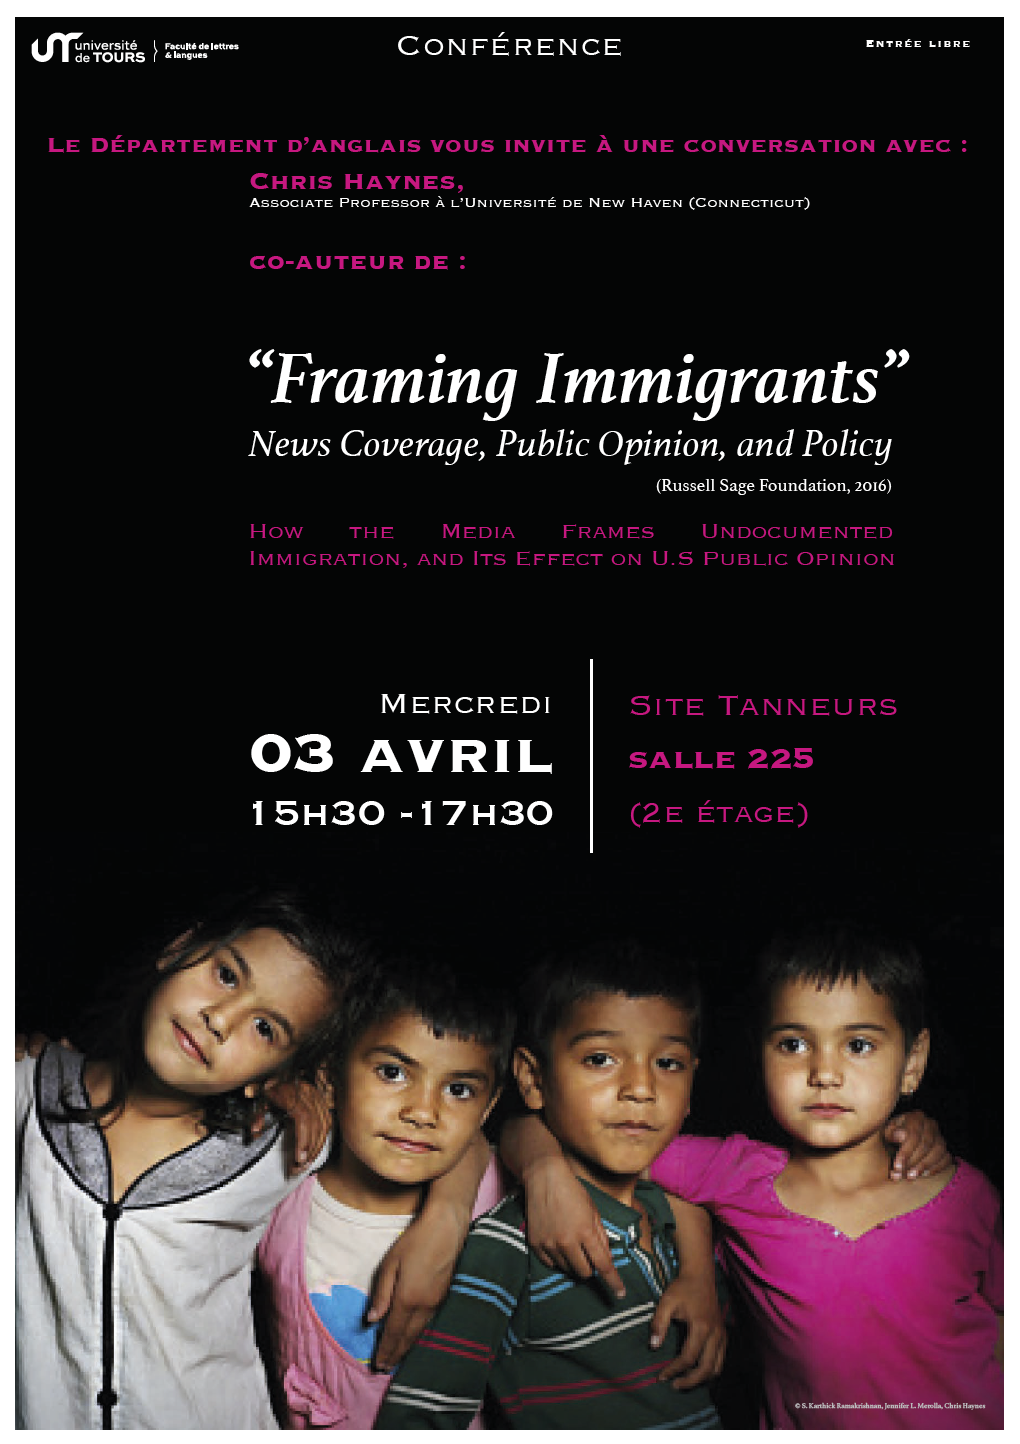 icone-Affiche_3 avril_Conference-Framing Immigrants